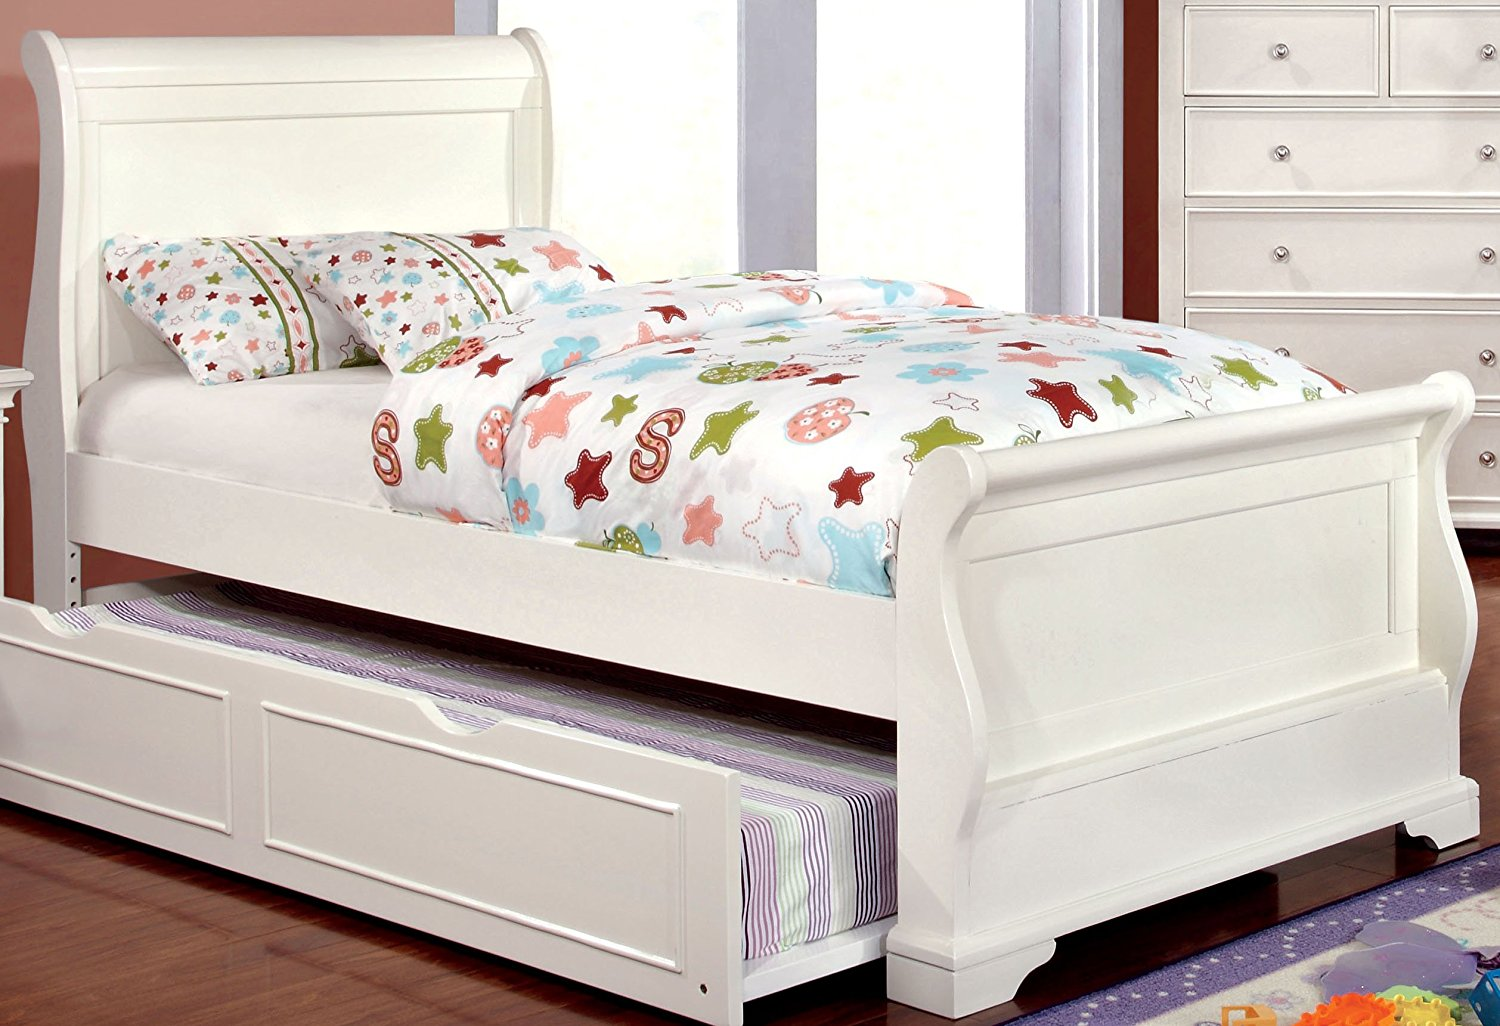 Furniture of America Maggie Transitional Youth Sleigh Bed, White, Full